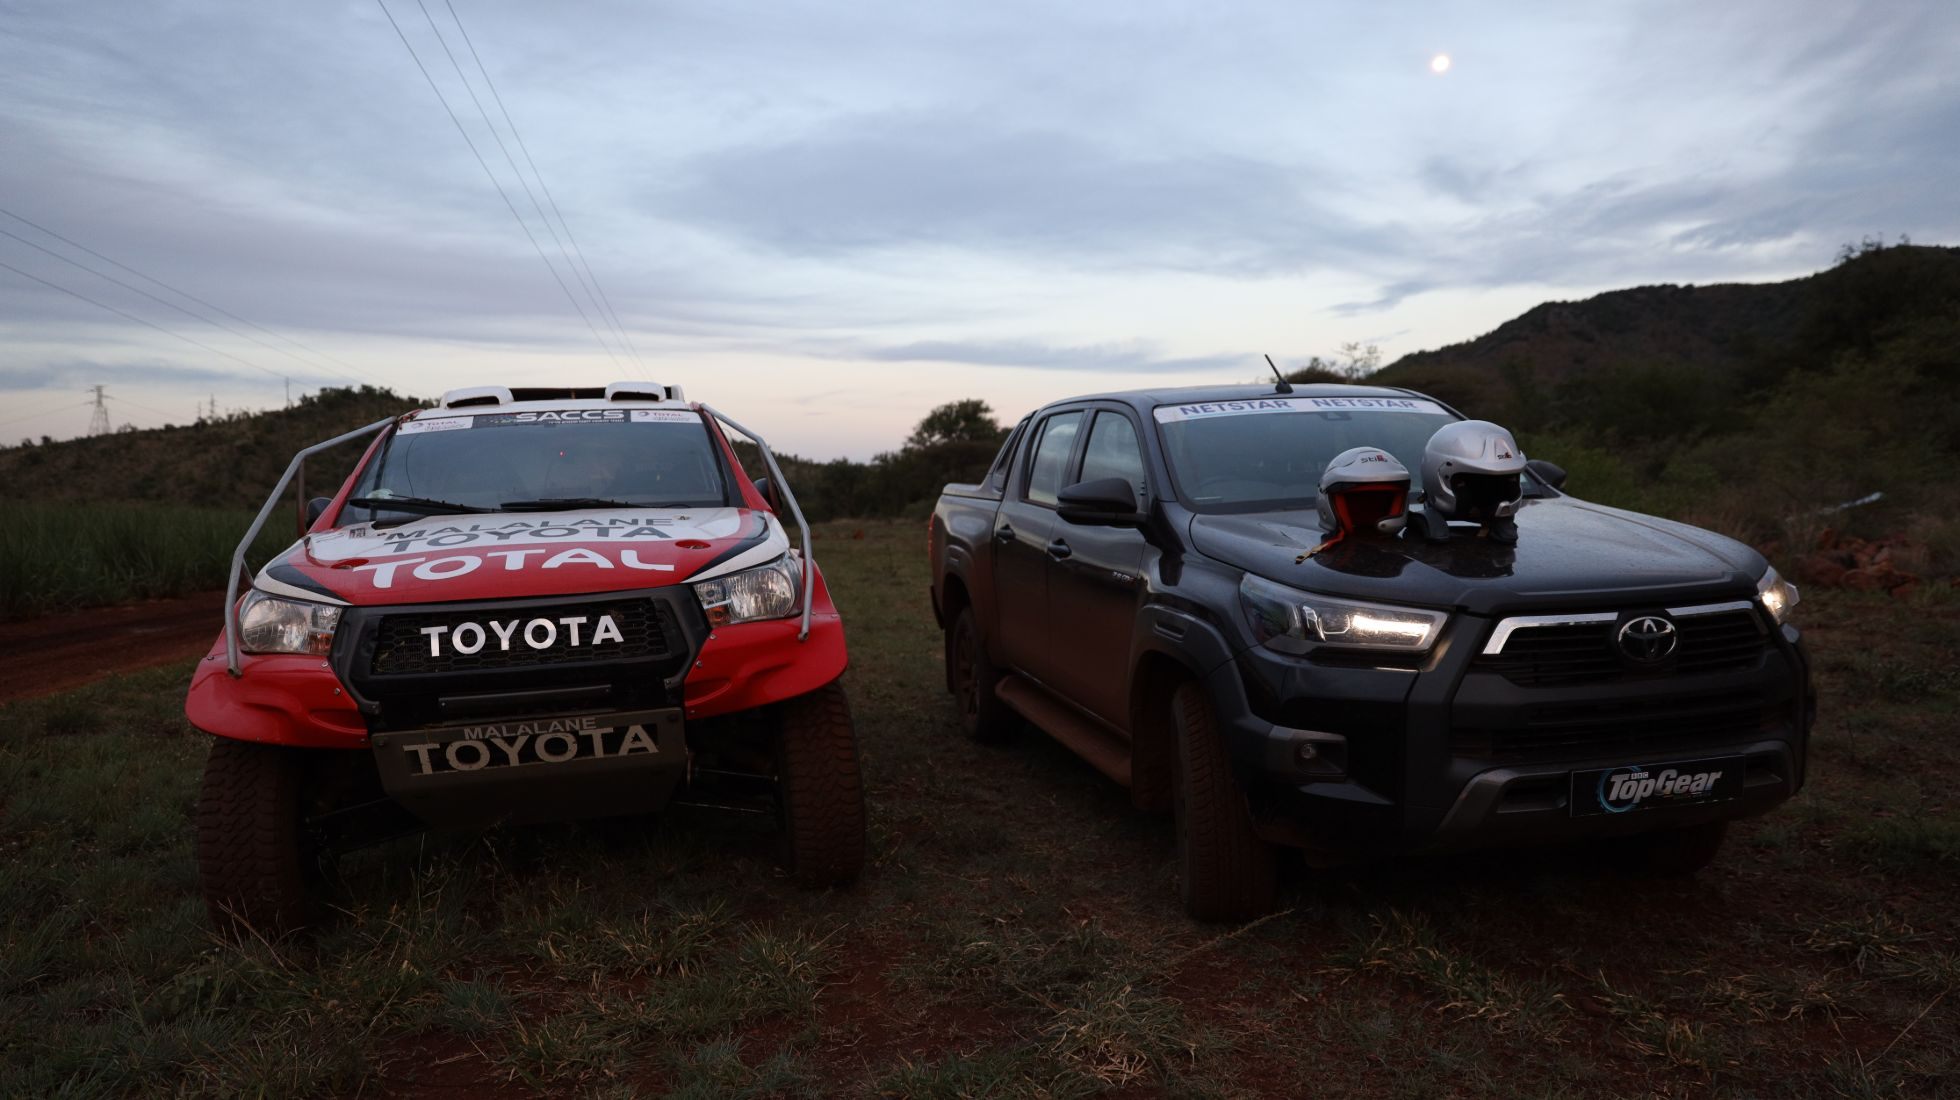 Nothing can quite prepare me as I go from one Hilux into quite another.